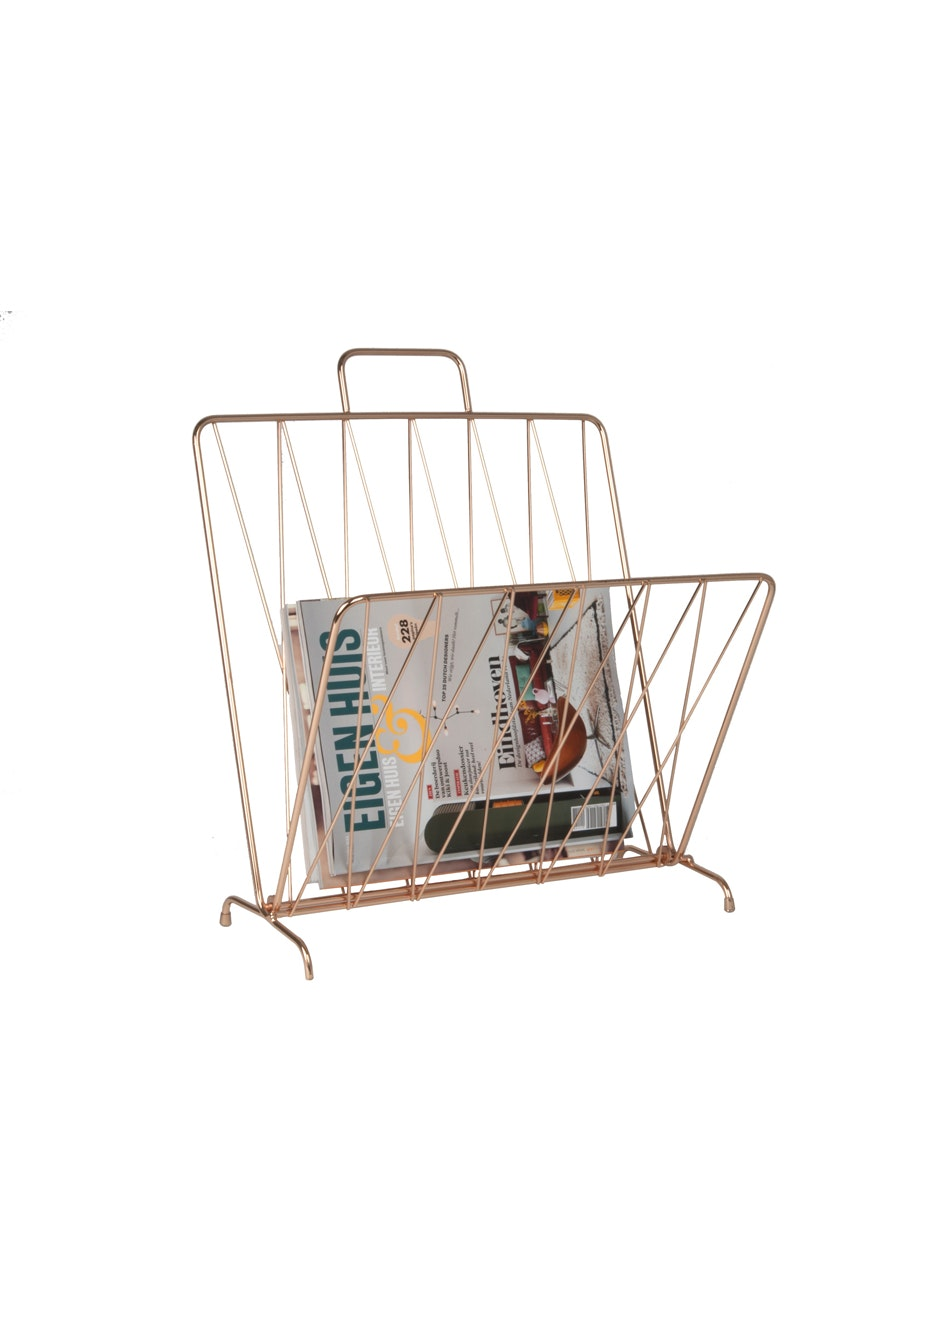 Pt Home - Magazine Rack 'Diamond Raster' - Copper